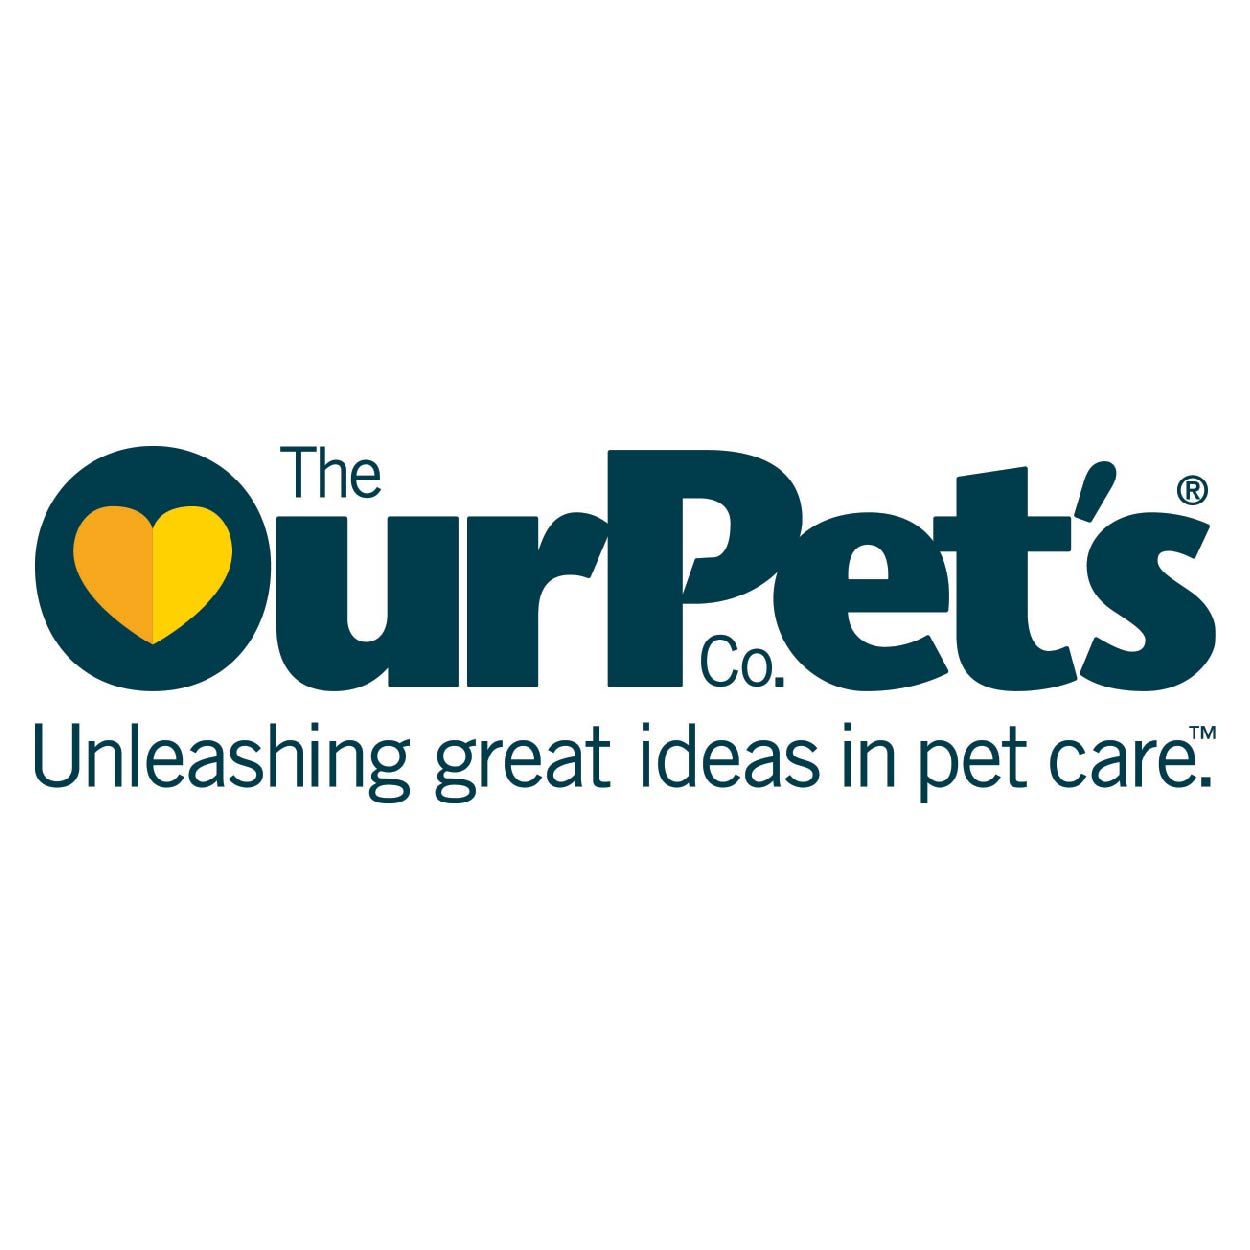 OurPet's Company Corporate Logo